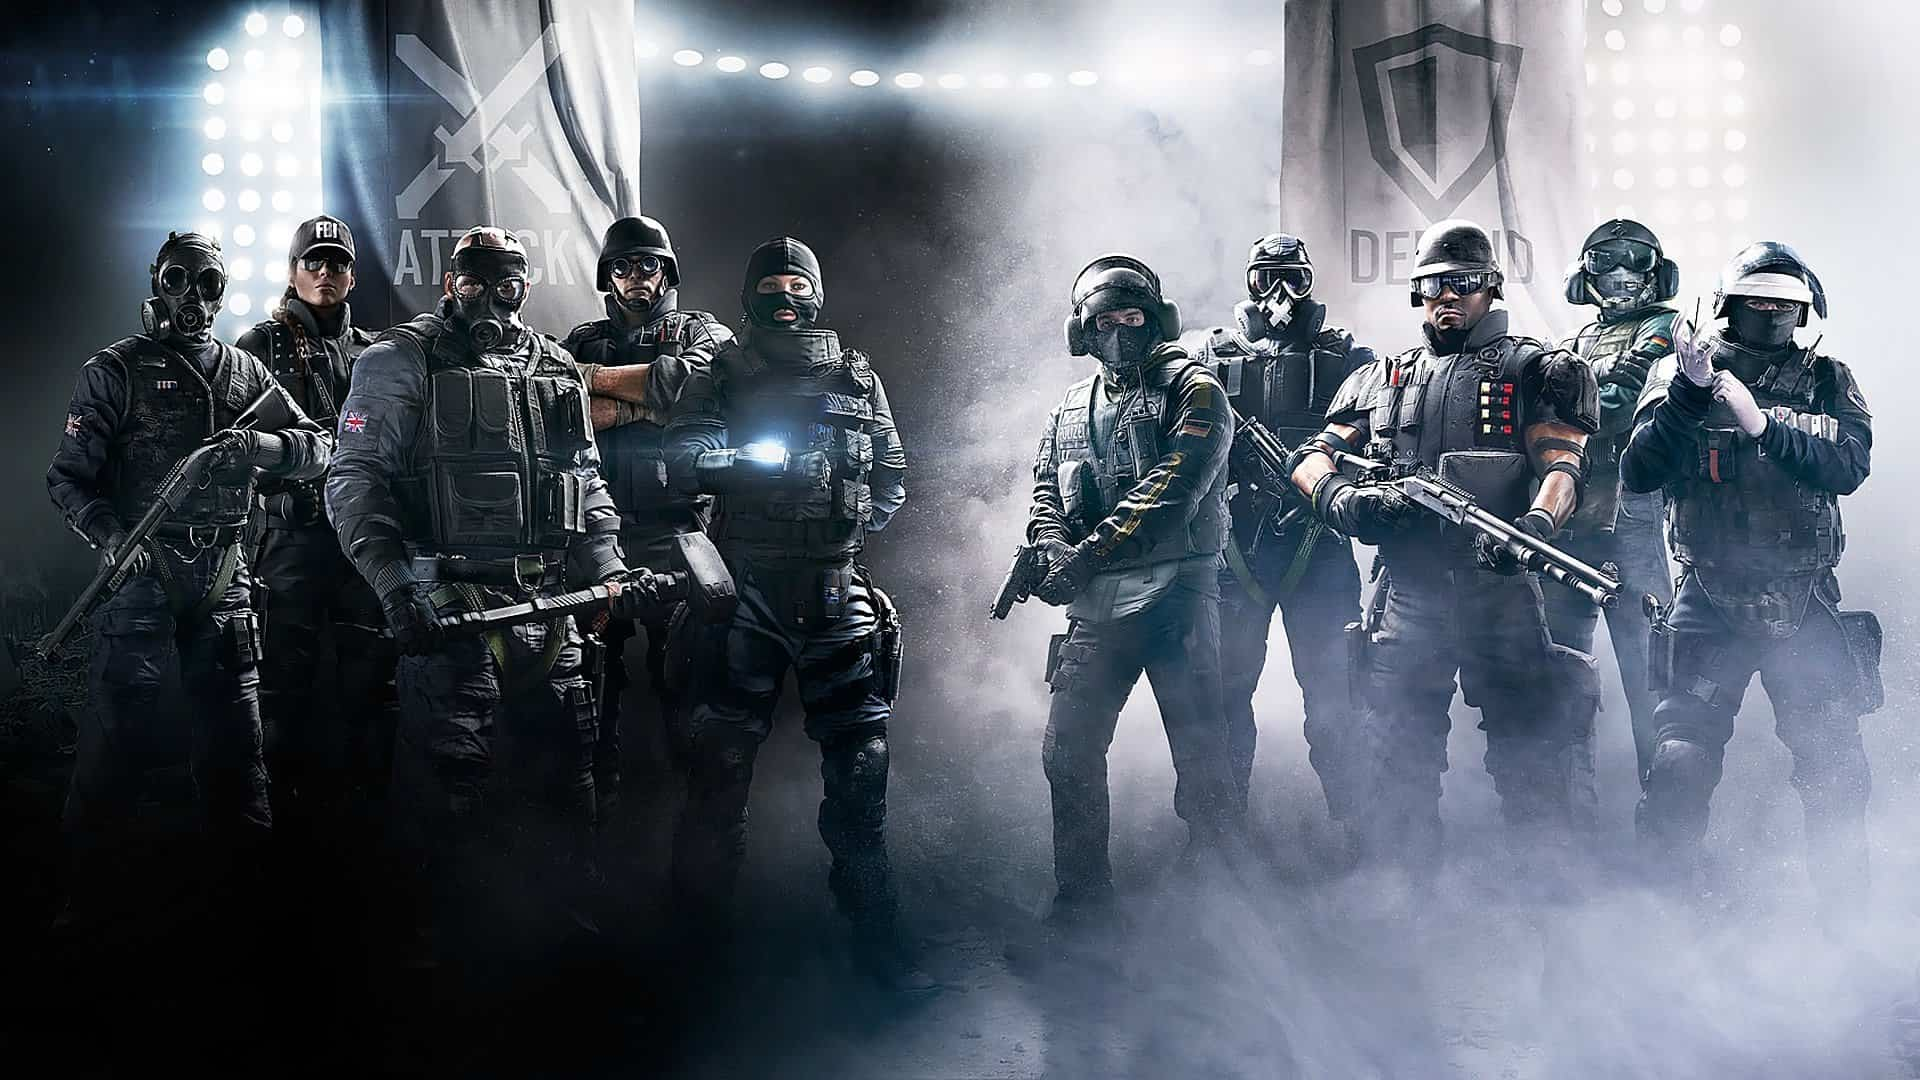 Gaming Tom Clancy's Rainbow Six Siege free weekend coming up By Edward Swardt- 15 November 2017 0